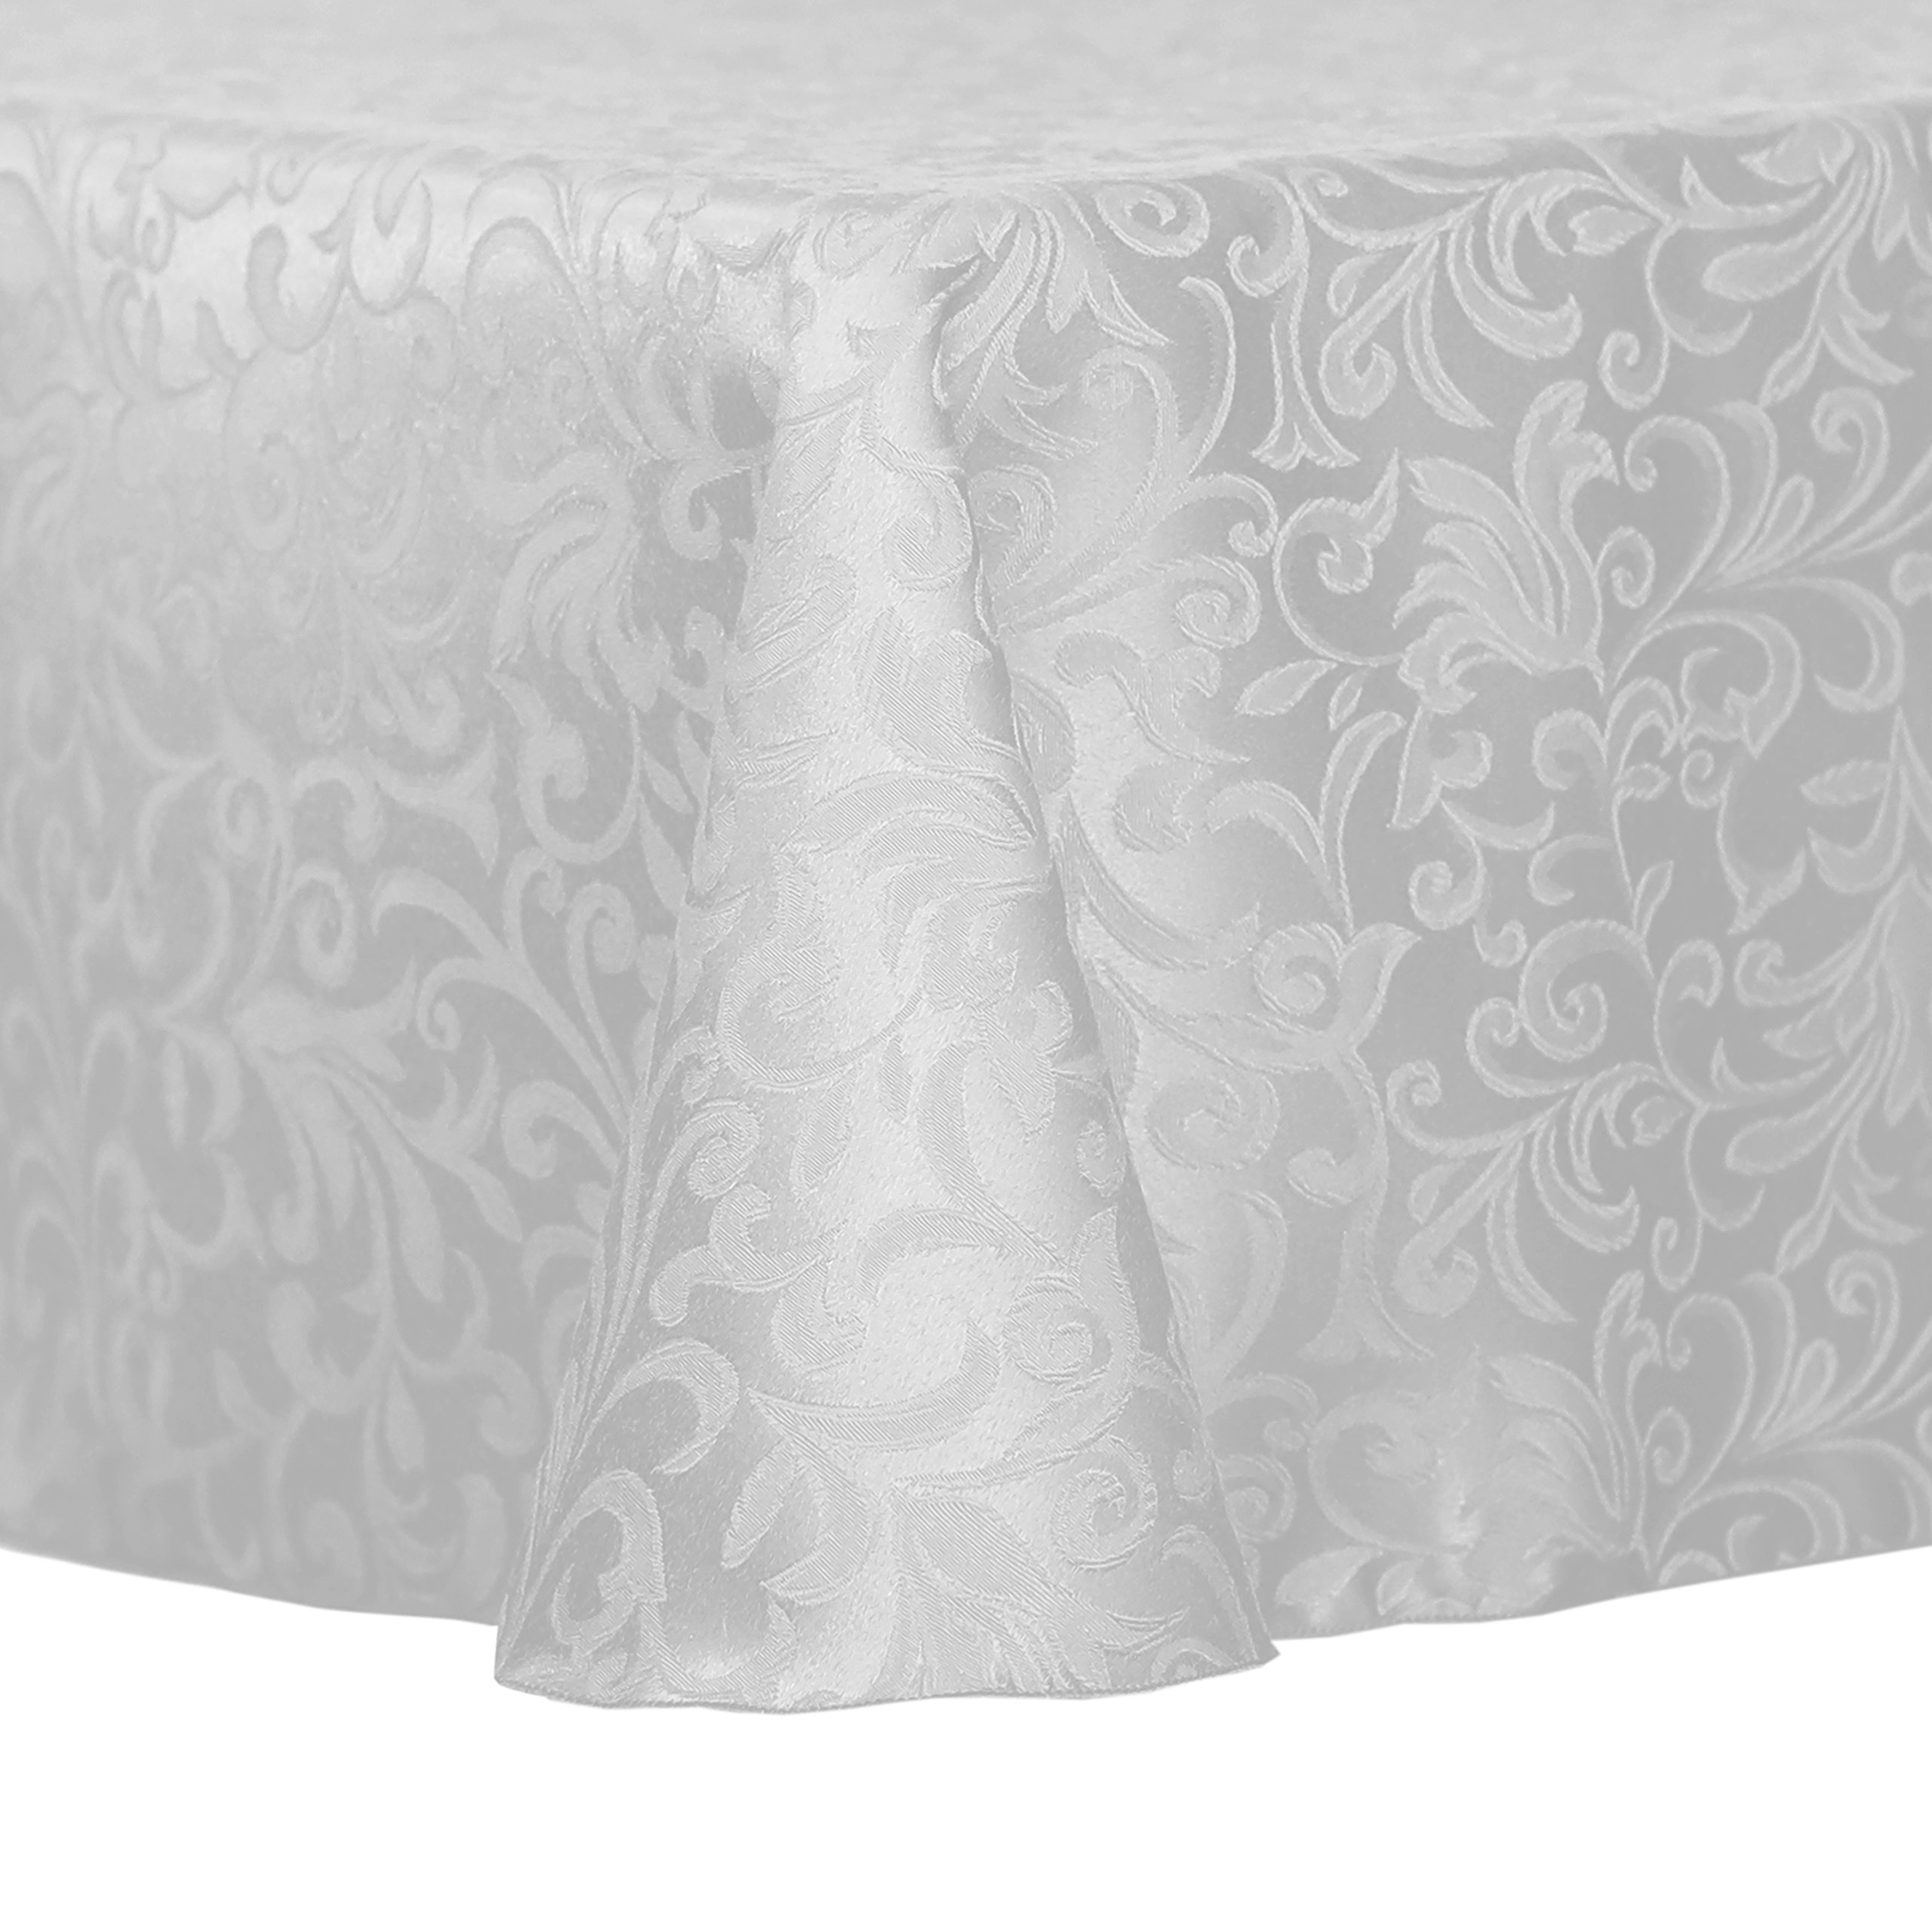 Ultimate Textile (10 Pack) Damask Somerset 108 x 156-Inch Oval Tablecloth - Home Dining Collection - Scroll Jacquard Design, White